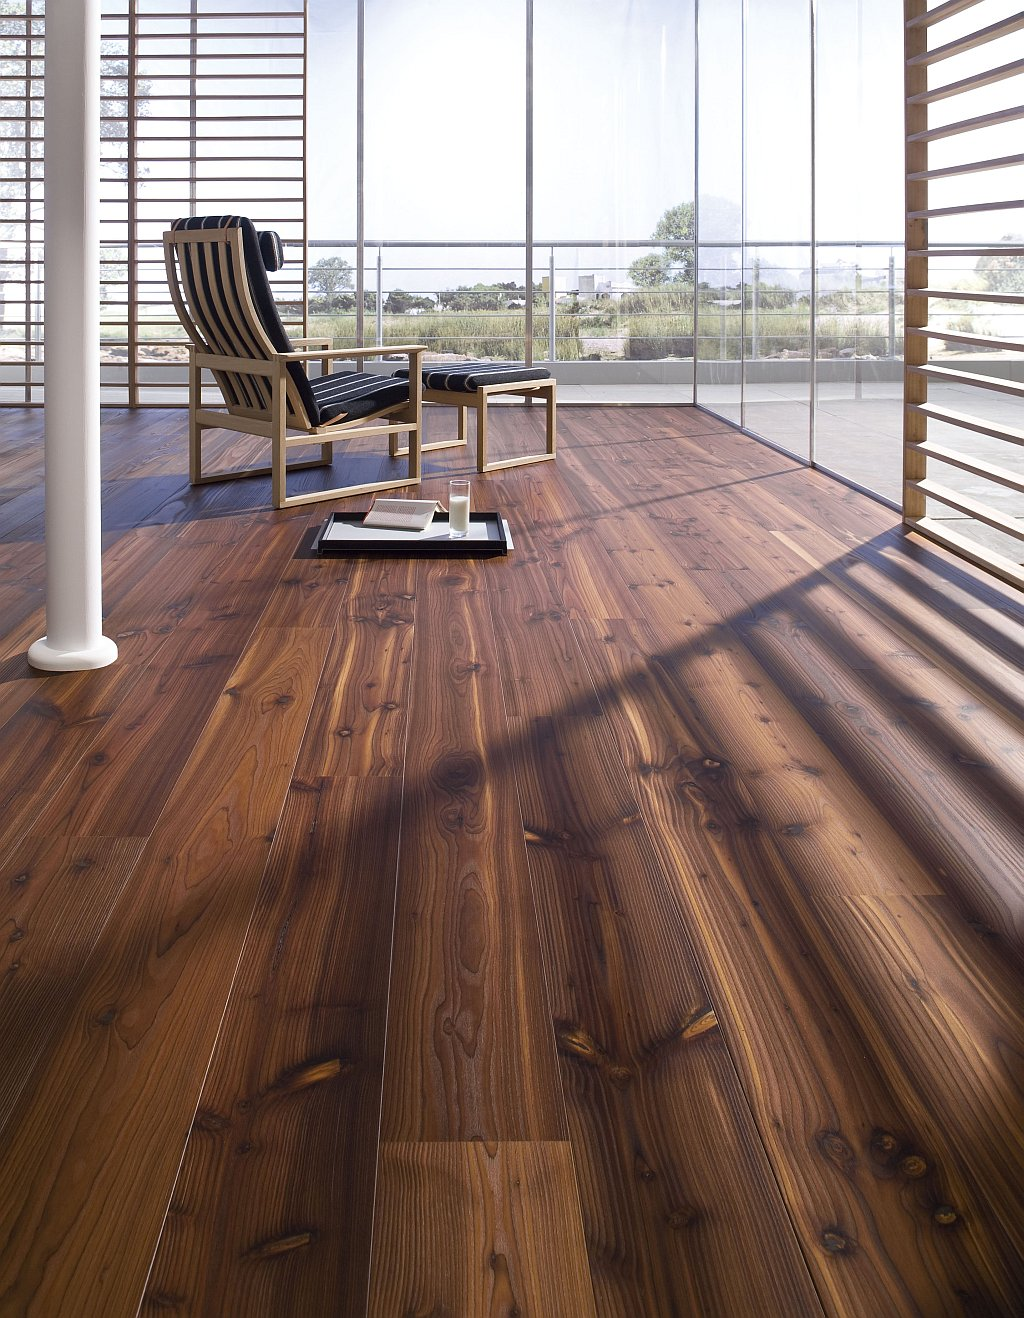 Choosing the Best Wood Flooring for Your Home - Light Or Dark Wood Flooring - Which One Suits Your Home?